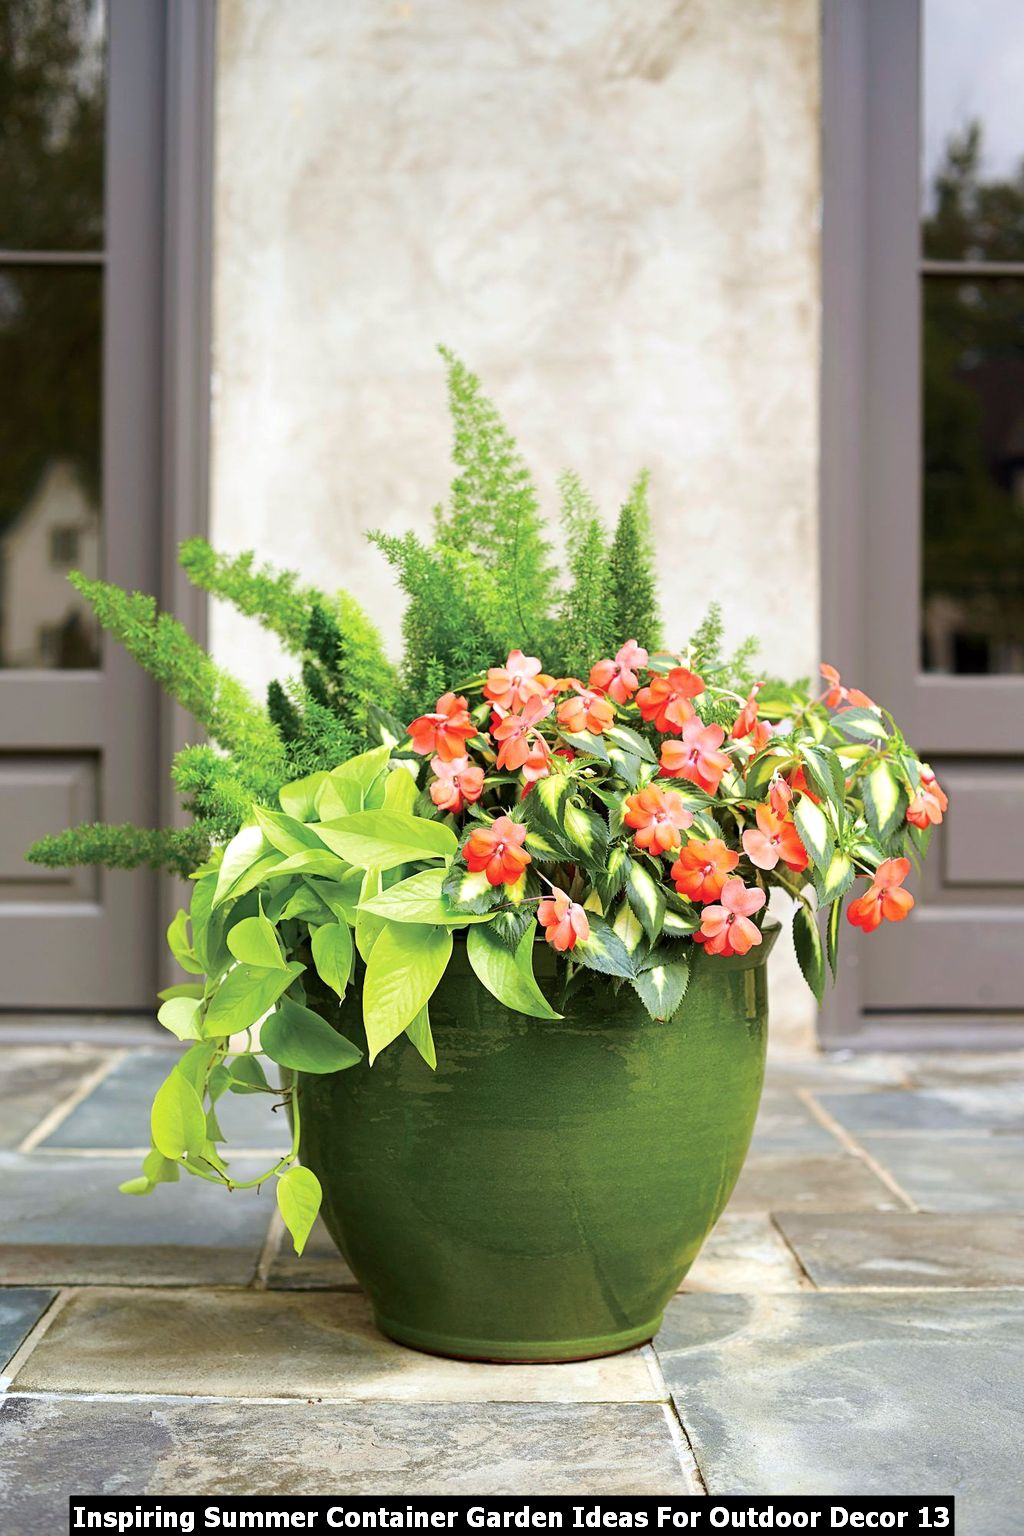 Inspiring Summer Container Garden Ideas For Outdoor Decor 13